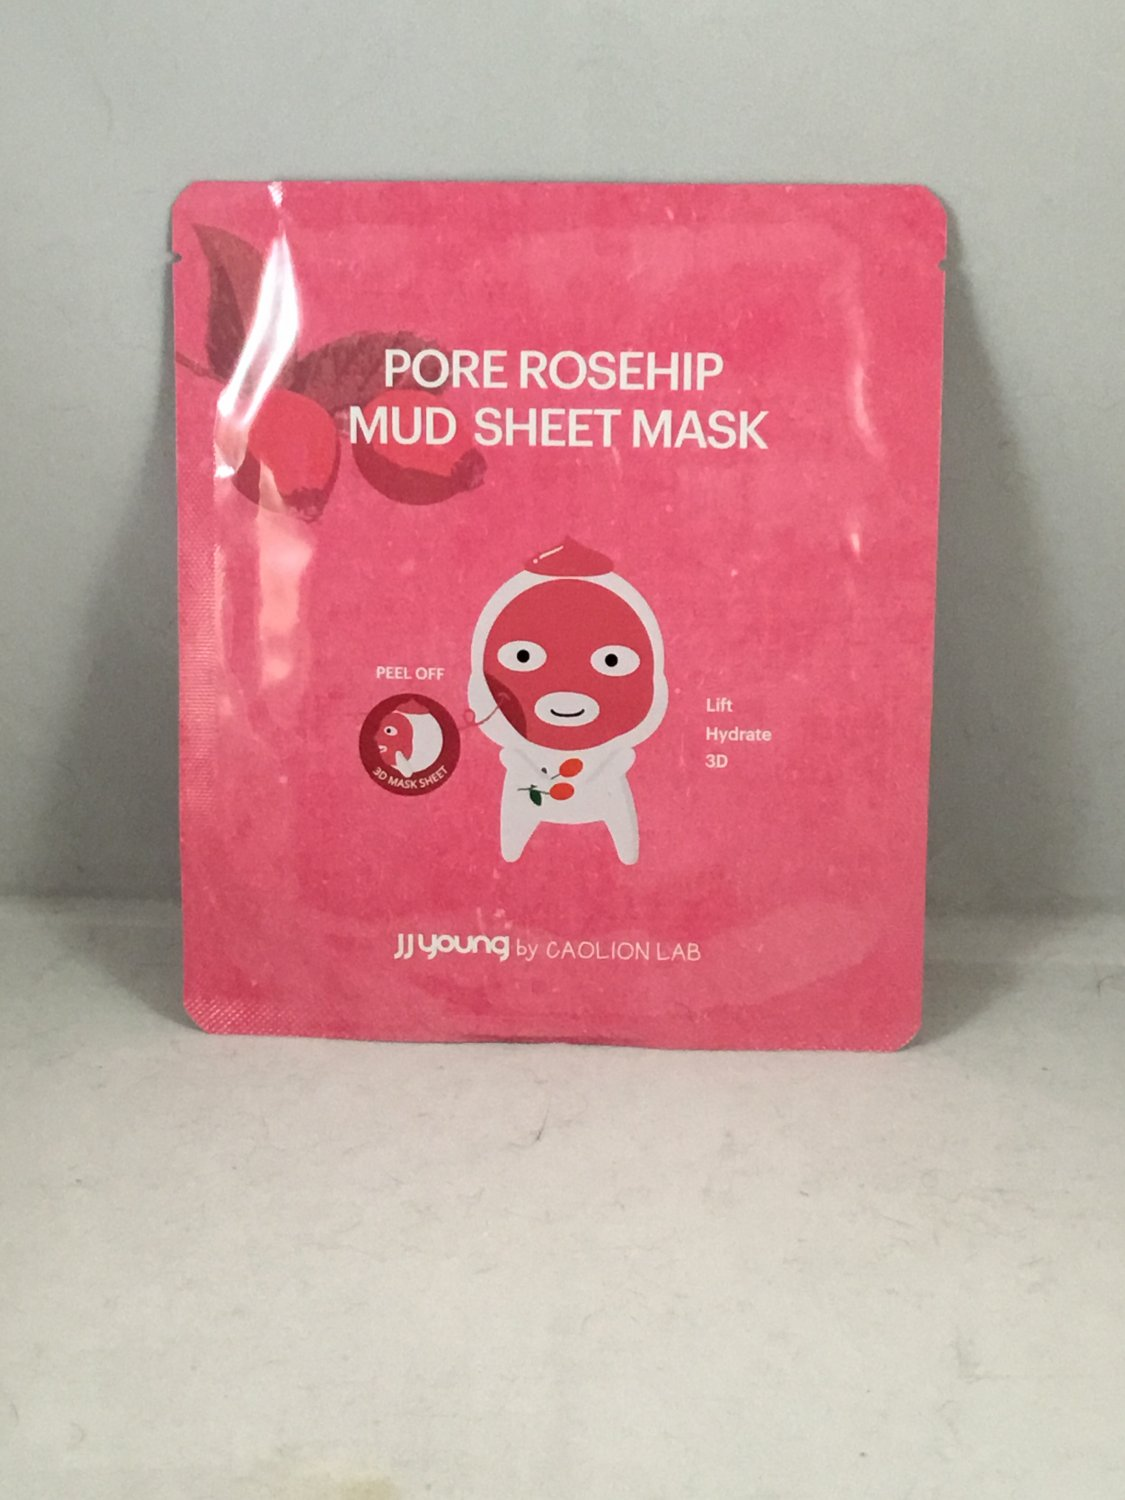 JJ Young by Caolion Lab Pore Rosehip Mud Sheet Mask Face JJYOUNG